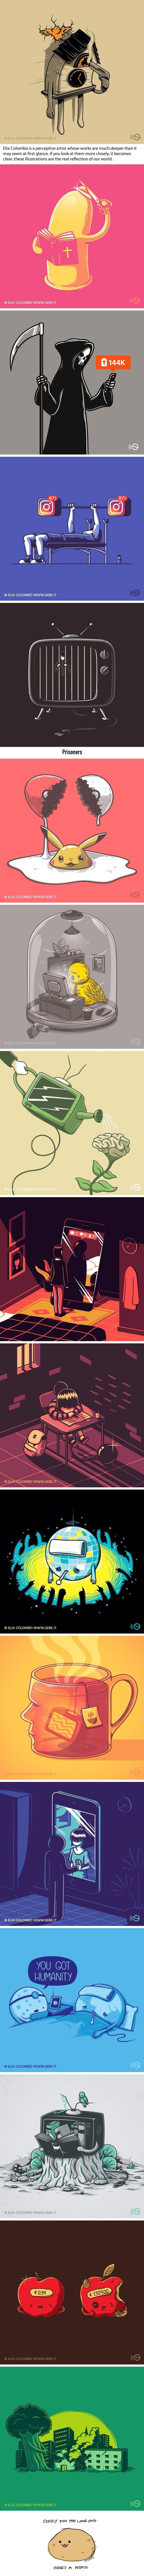 15 Illustrations About What This World Is Coming To